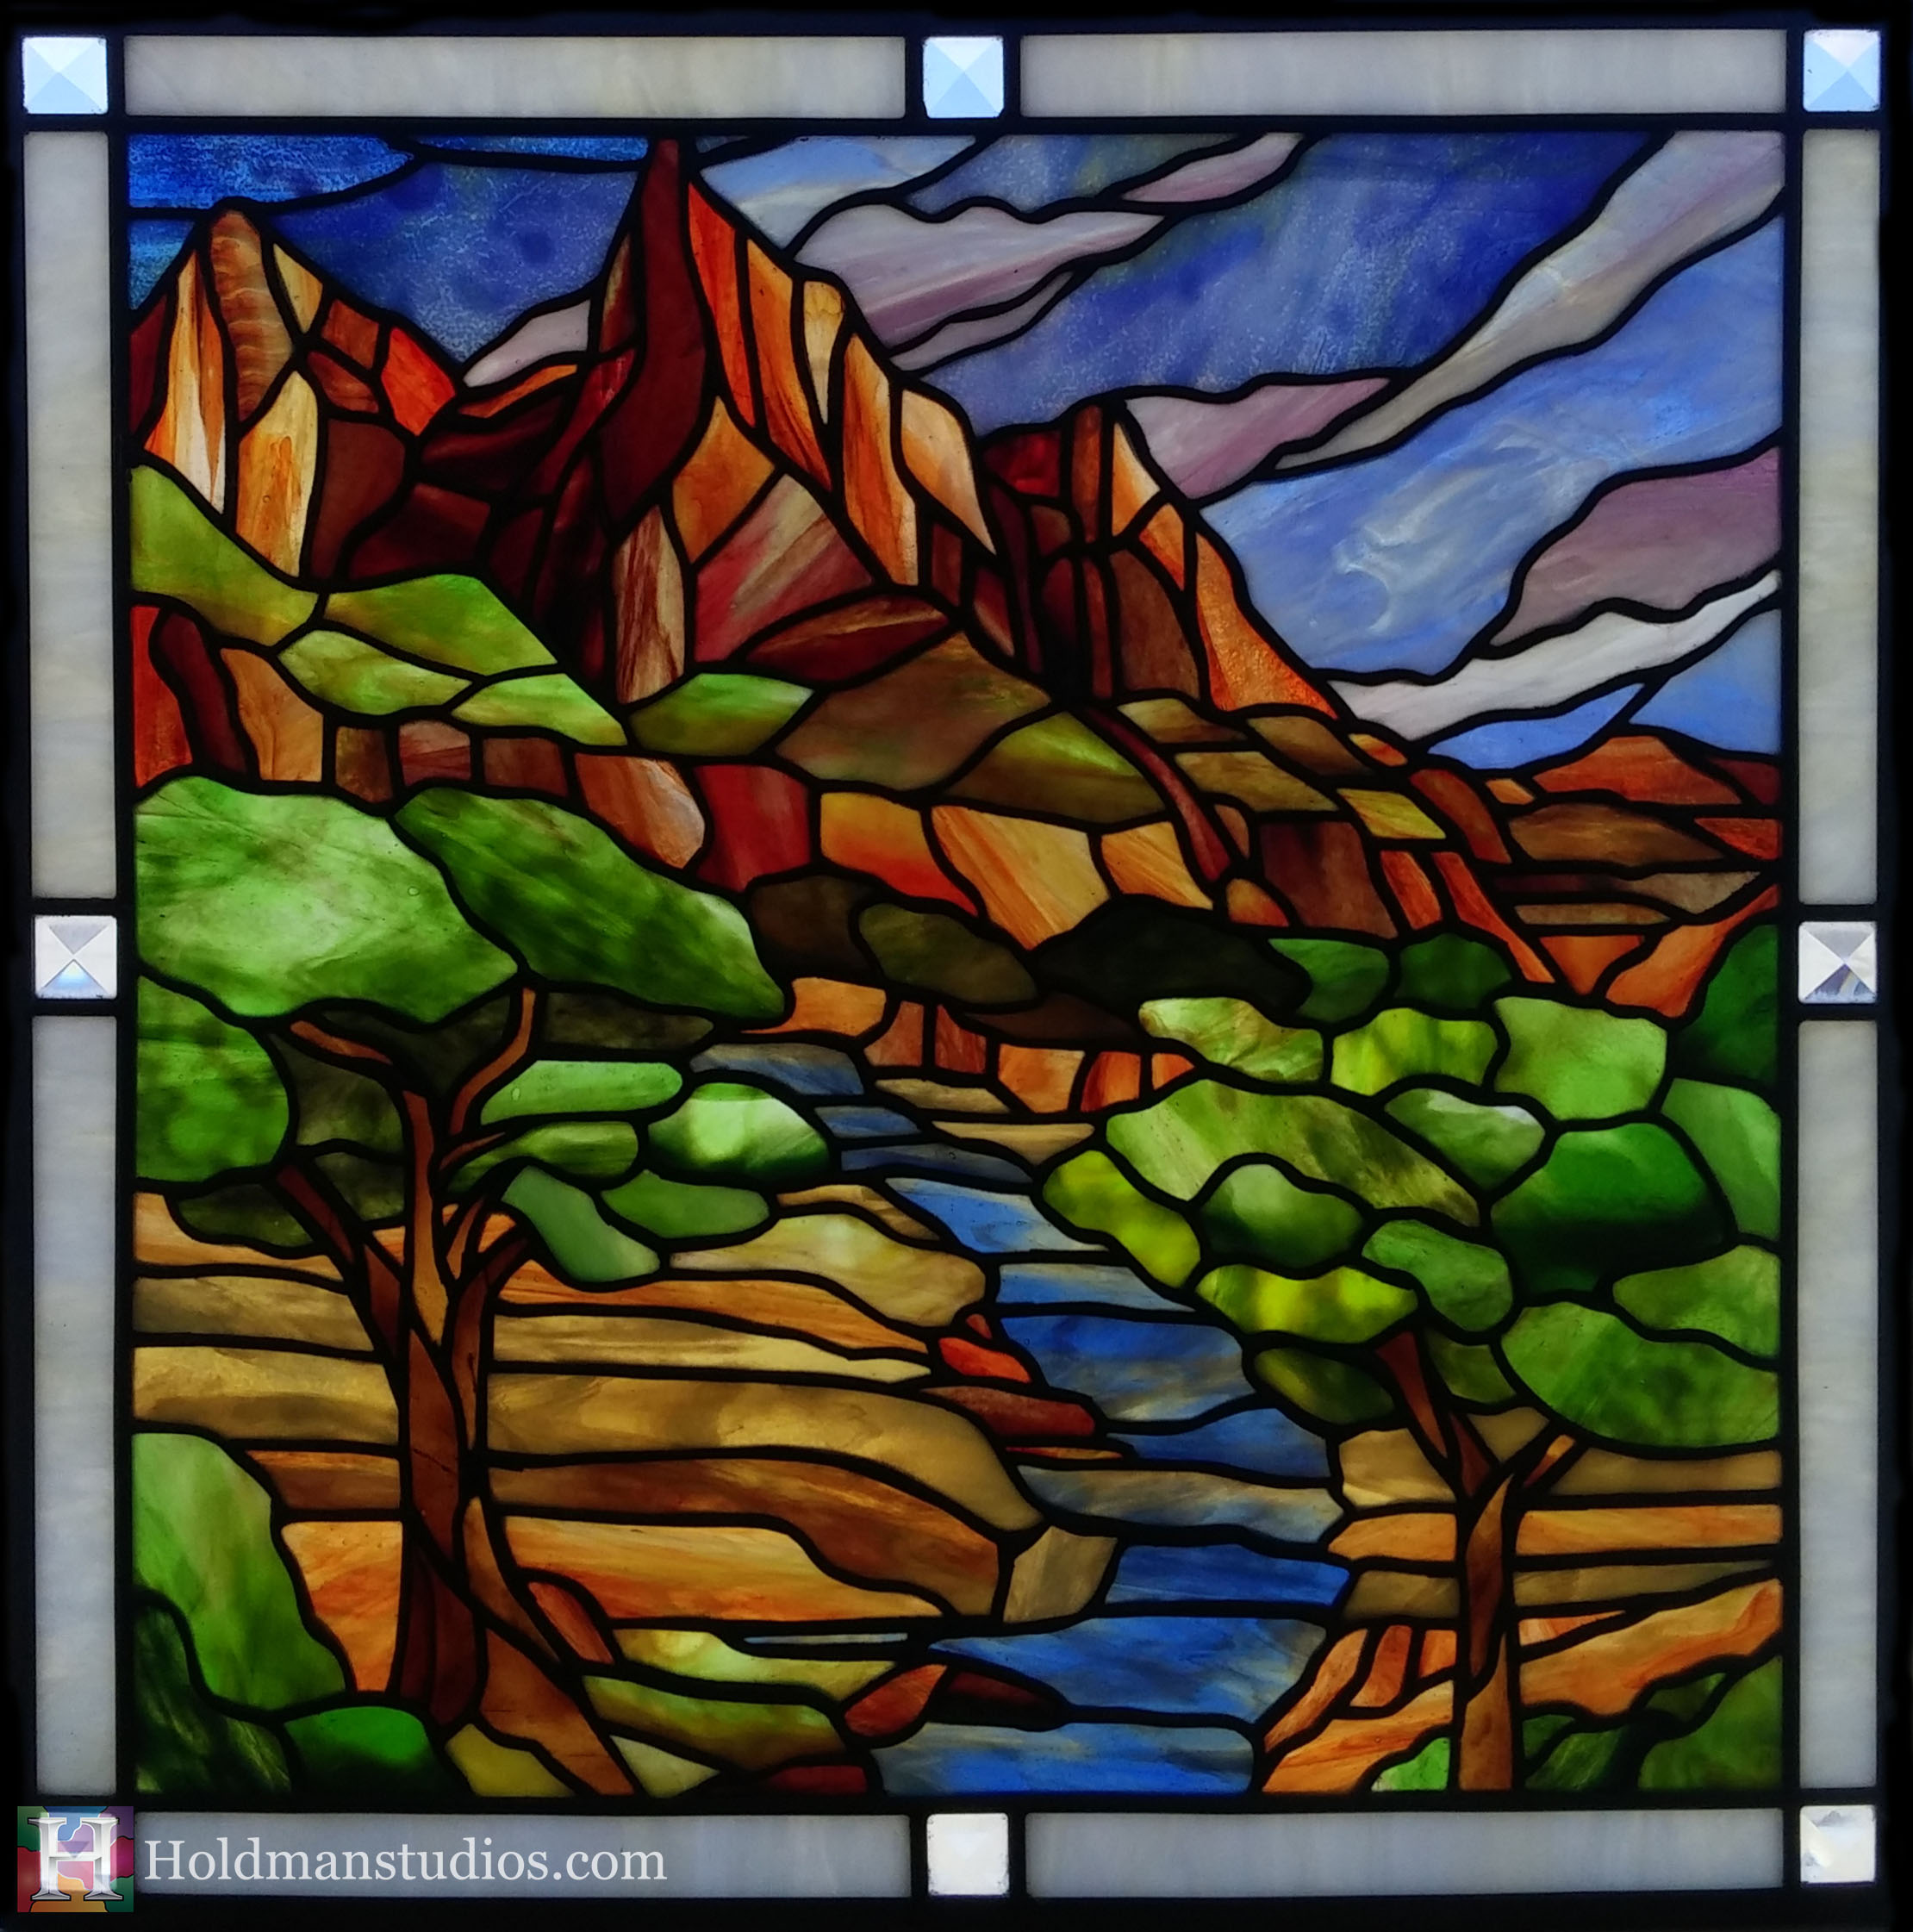 Holdman-Studios-Stained-Glass-Window-Southern-Utah-Mountians-Trees-Sky-Clounds-River.jpg